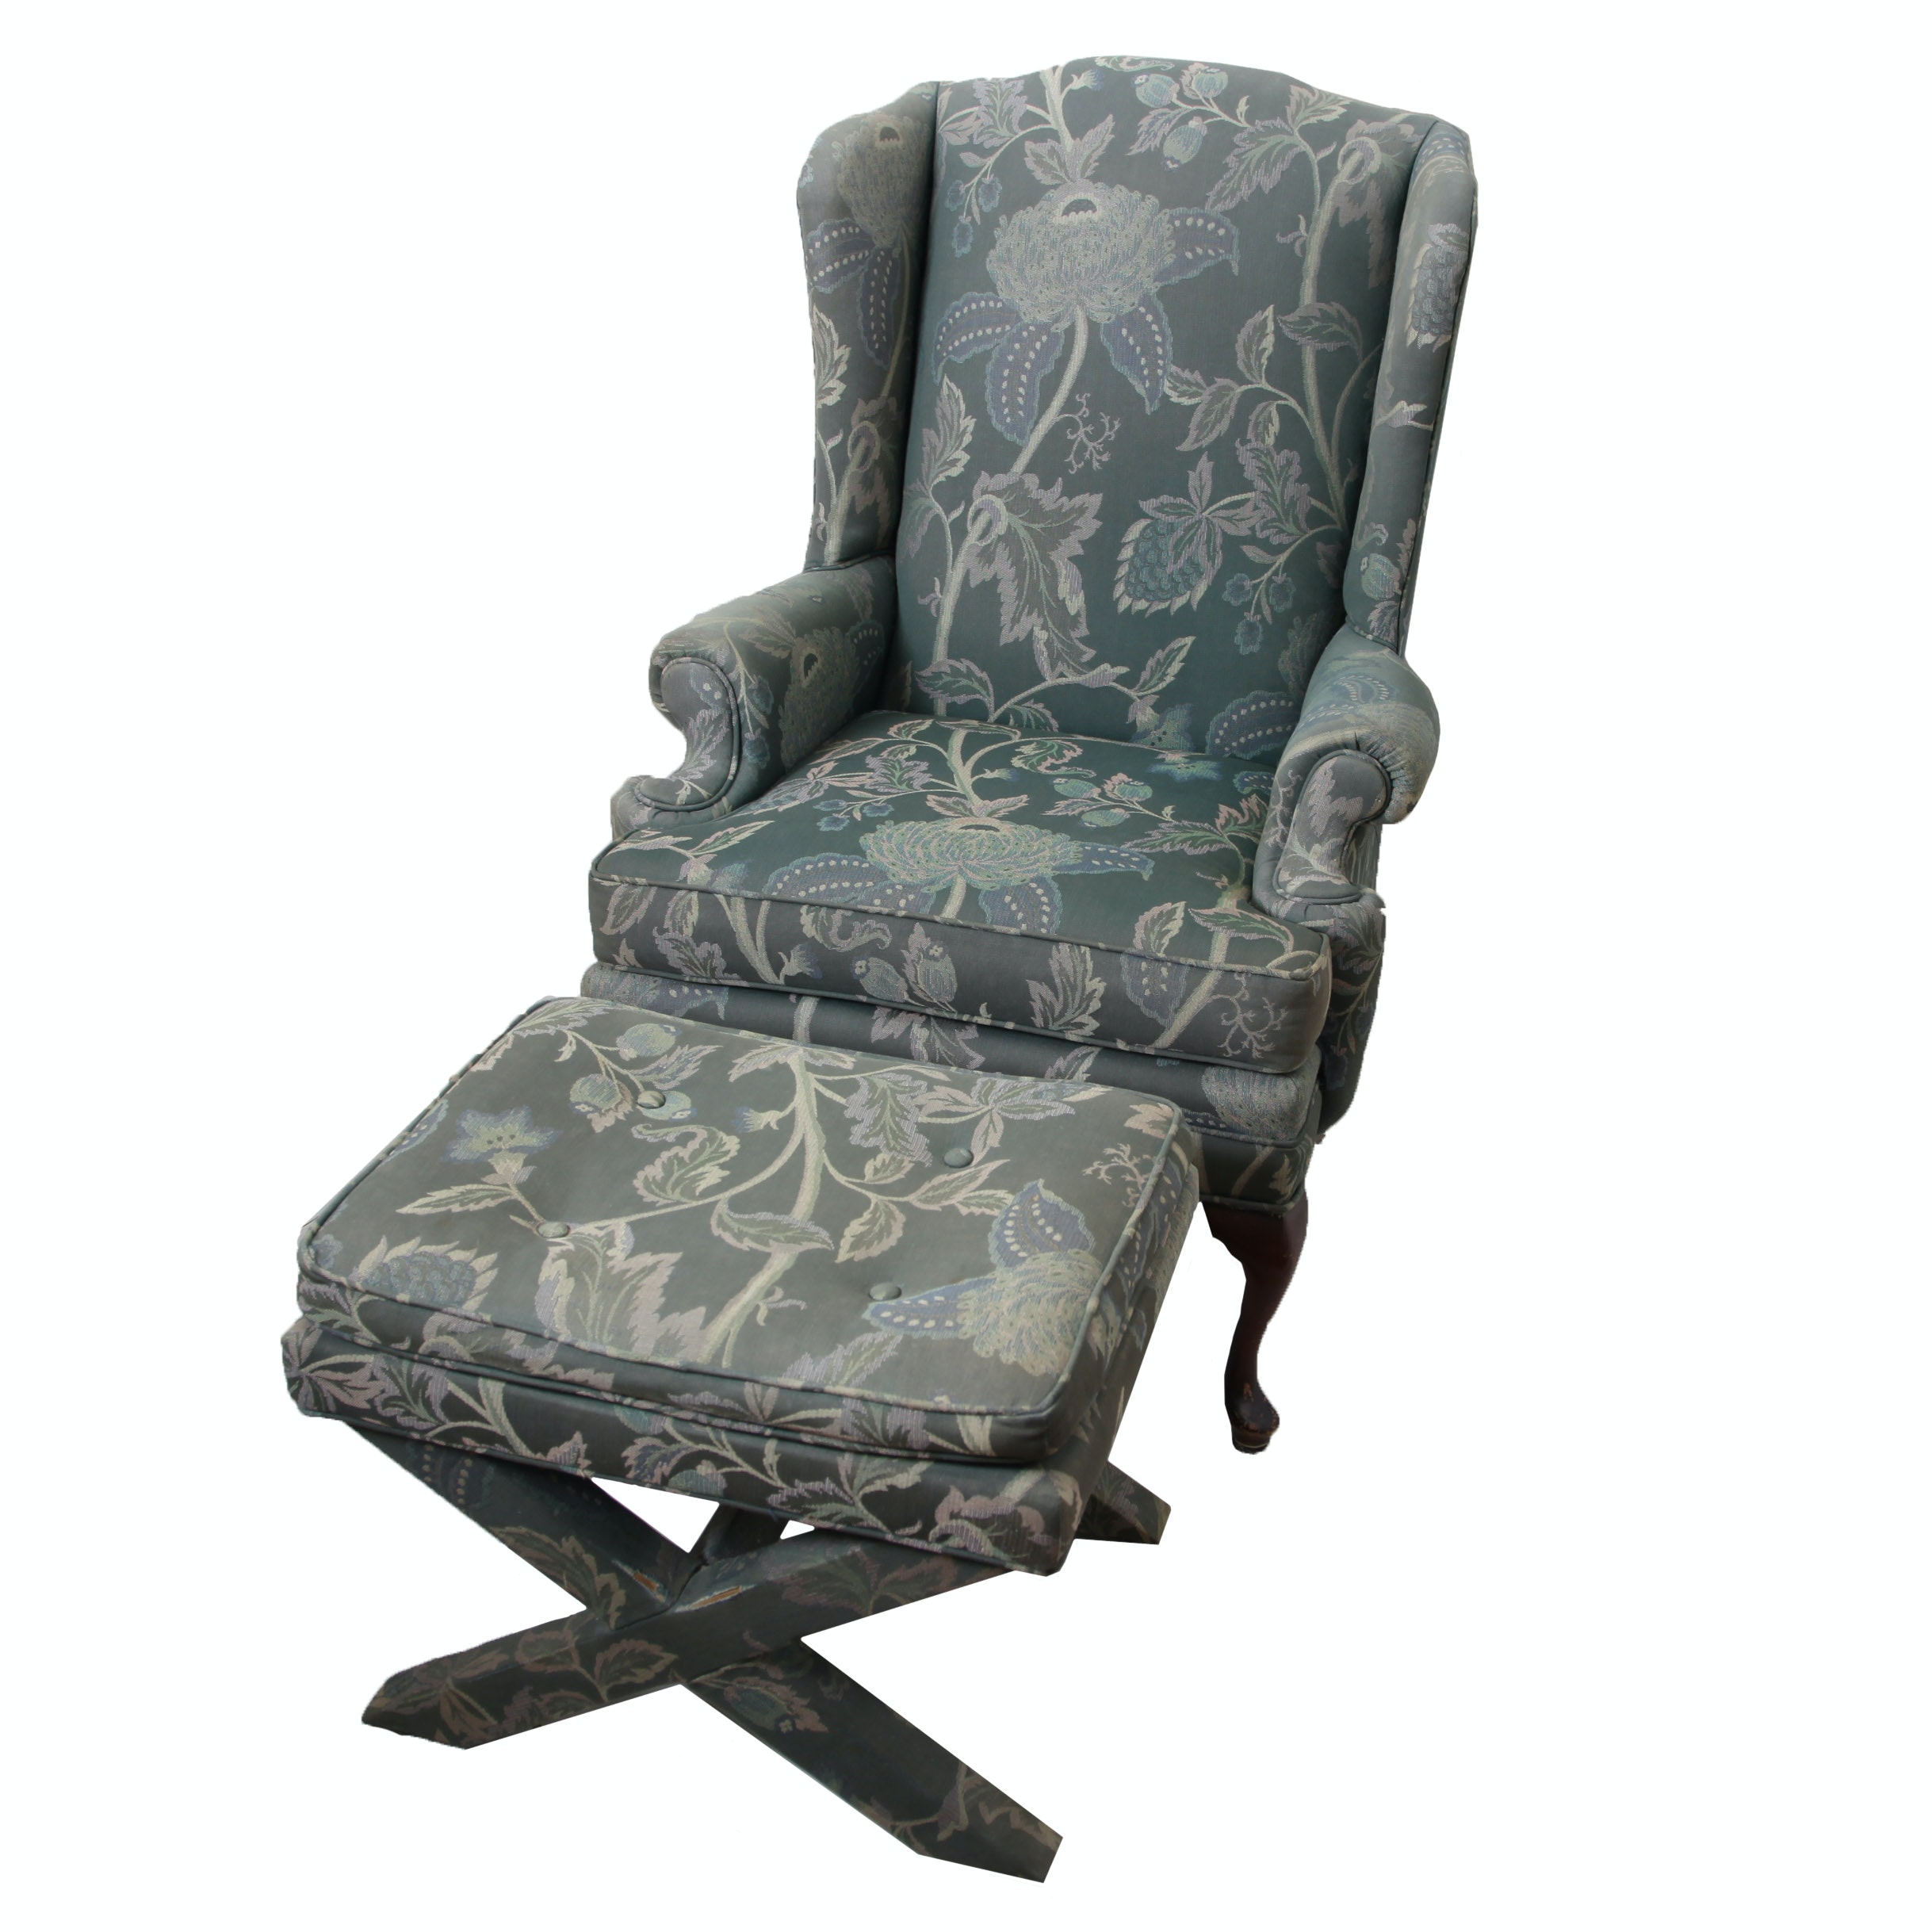 Queen Anne Style Wingback Chair with Ottoman